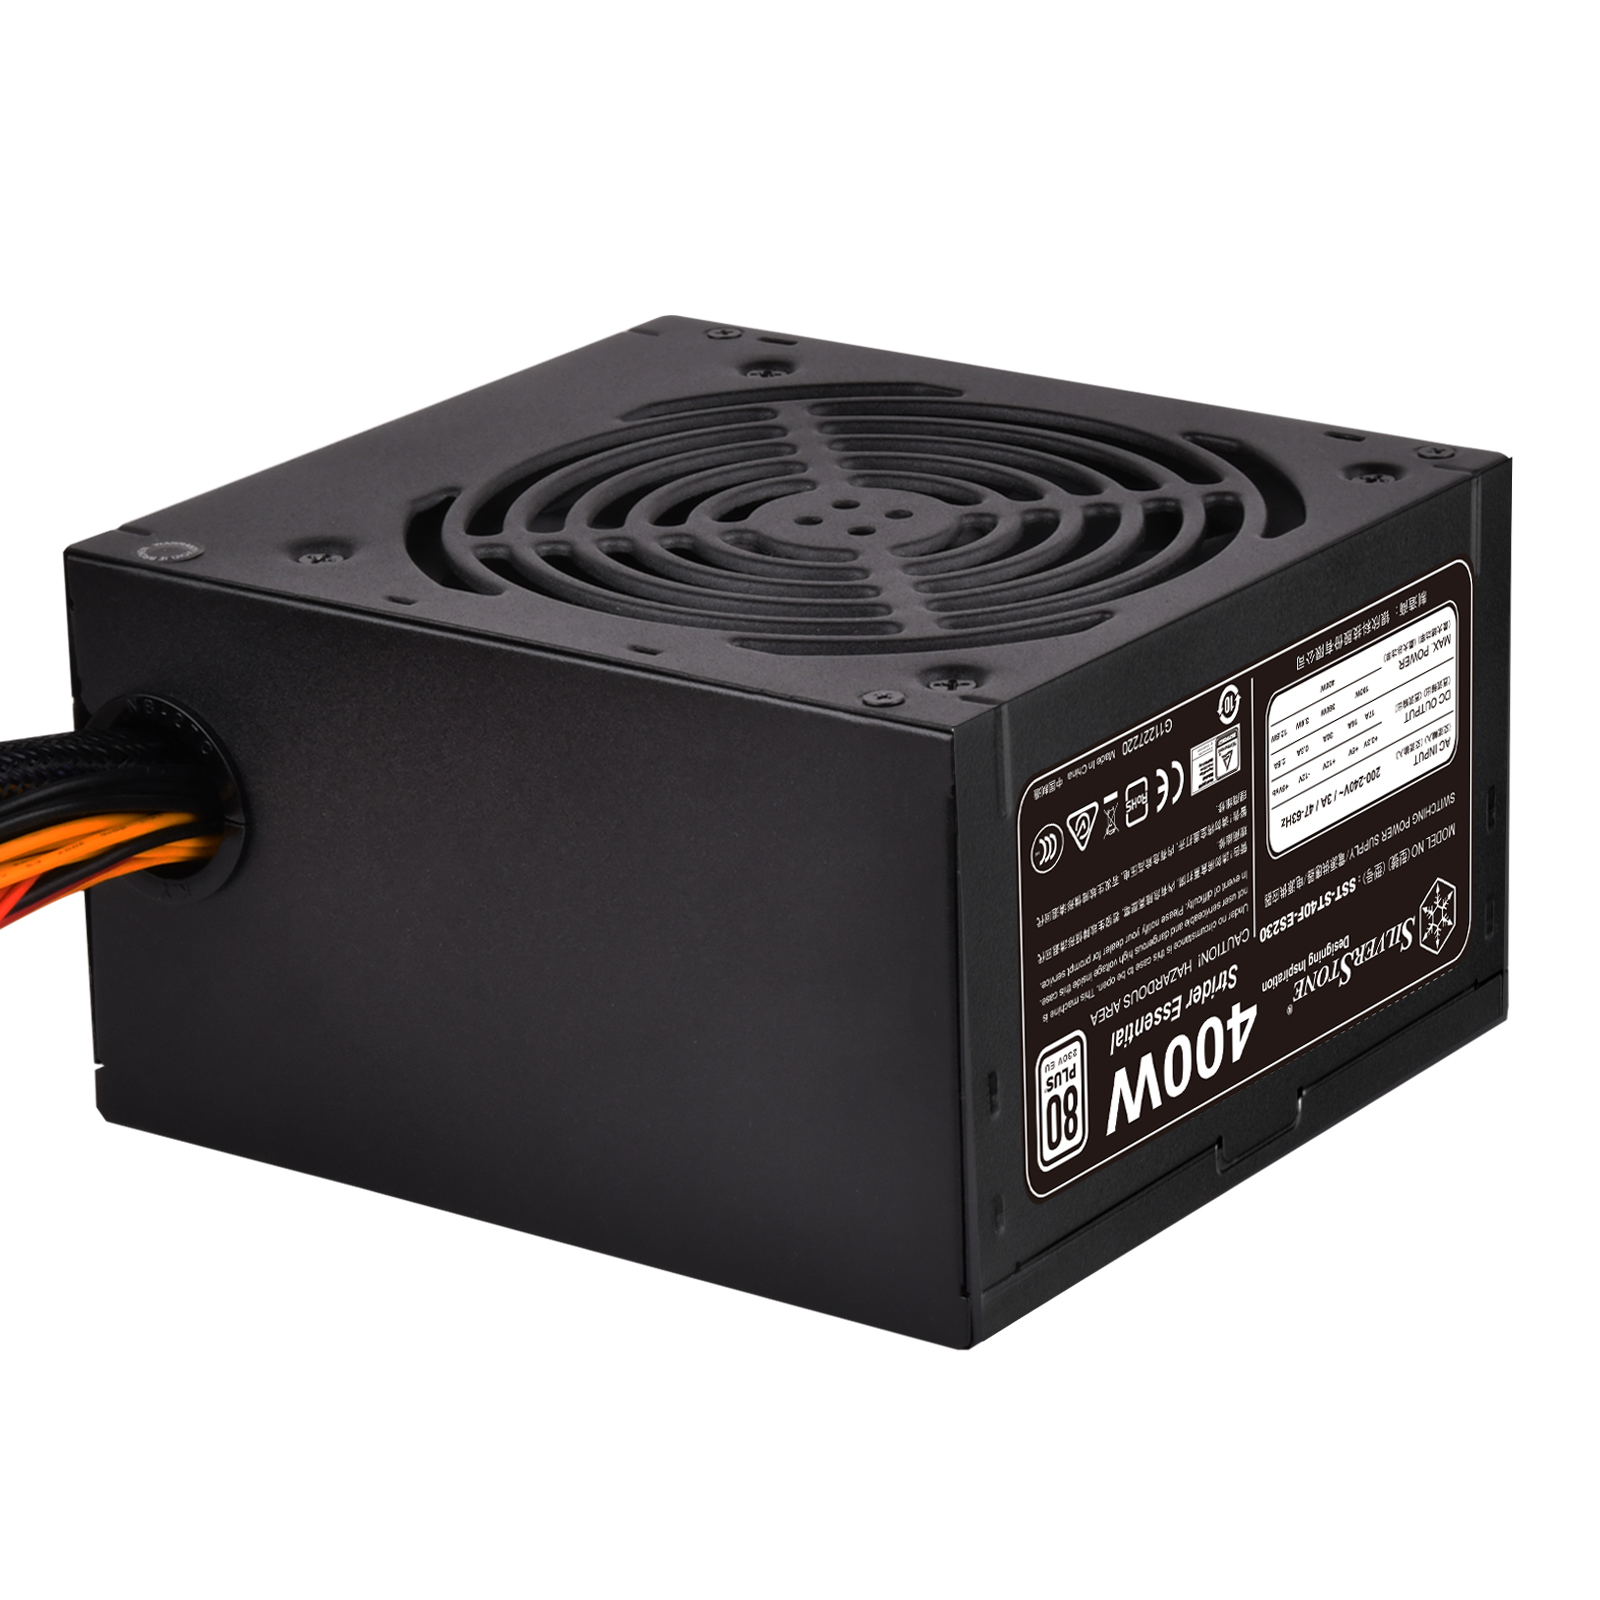 SilverStone ST40F-ES230 Power Supply